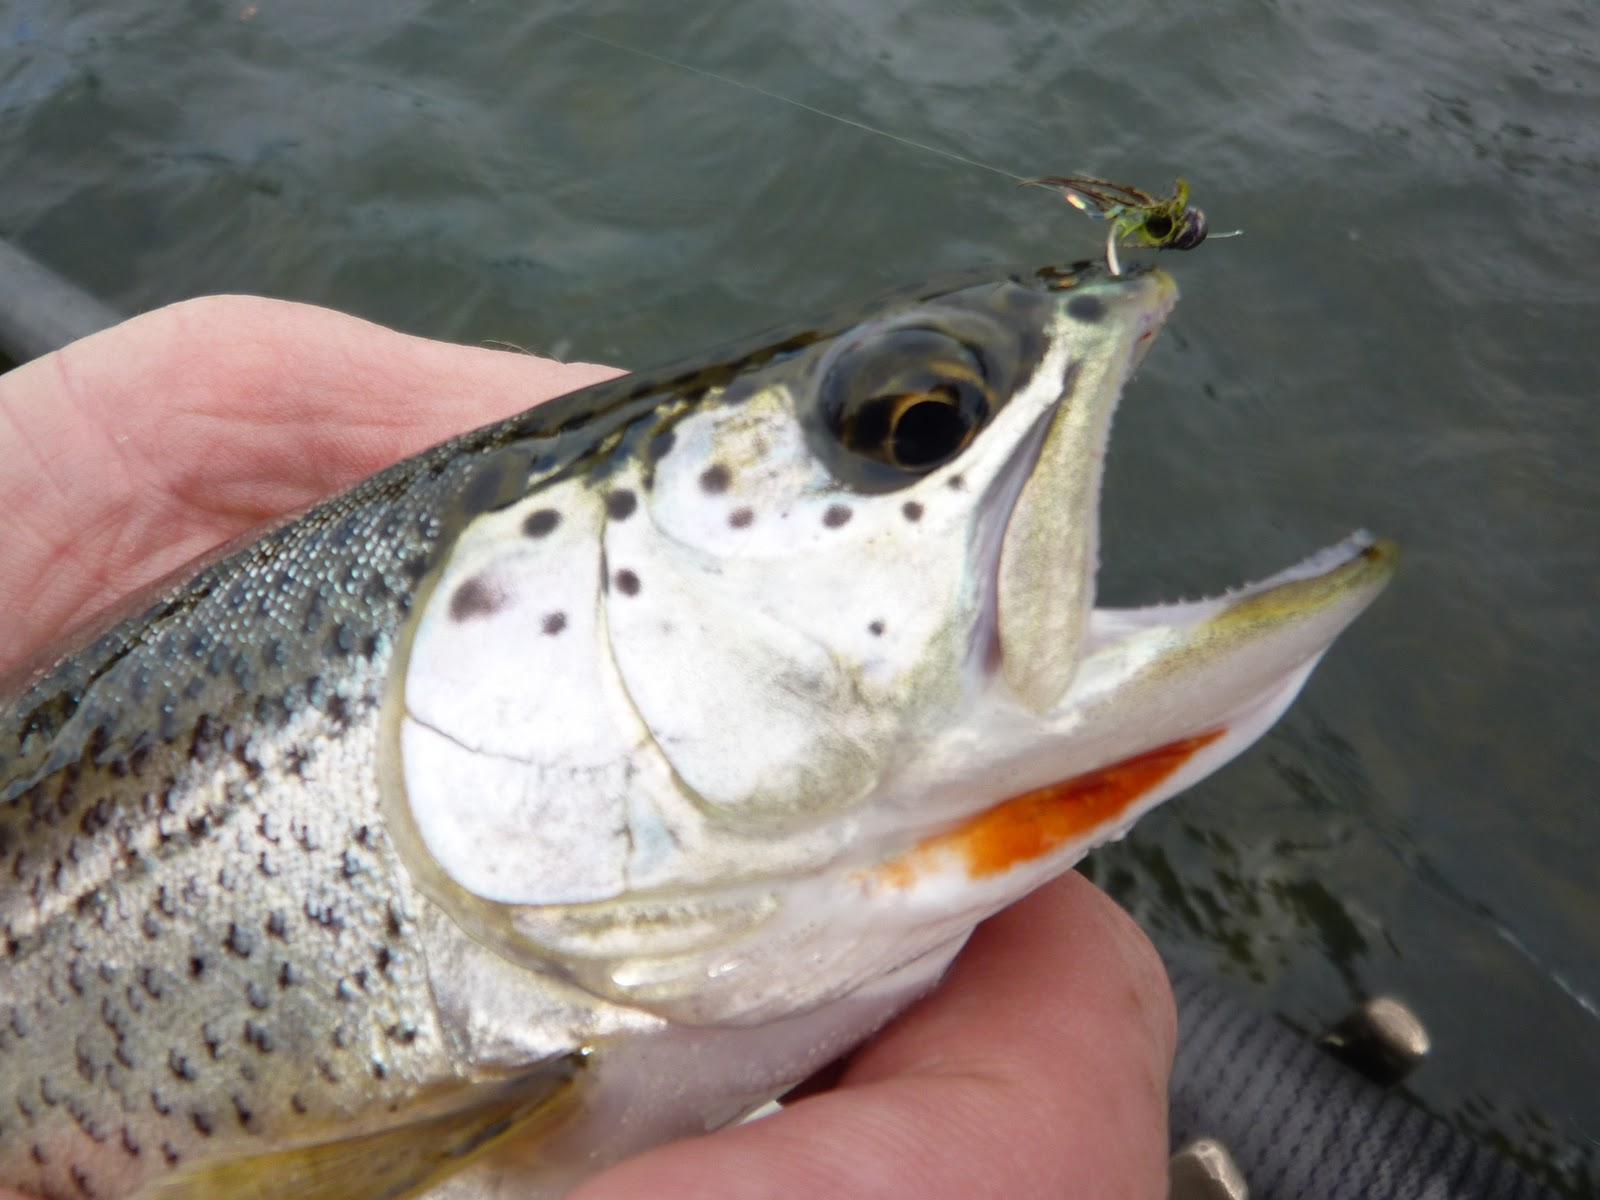 Brian marz 39 s fly fishing oregon blog september 2011 for Trout fishing oregon